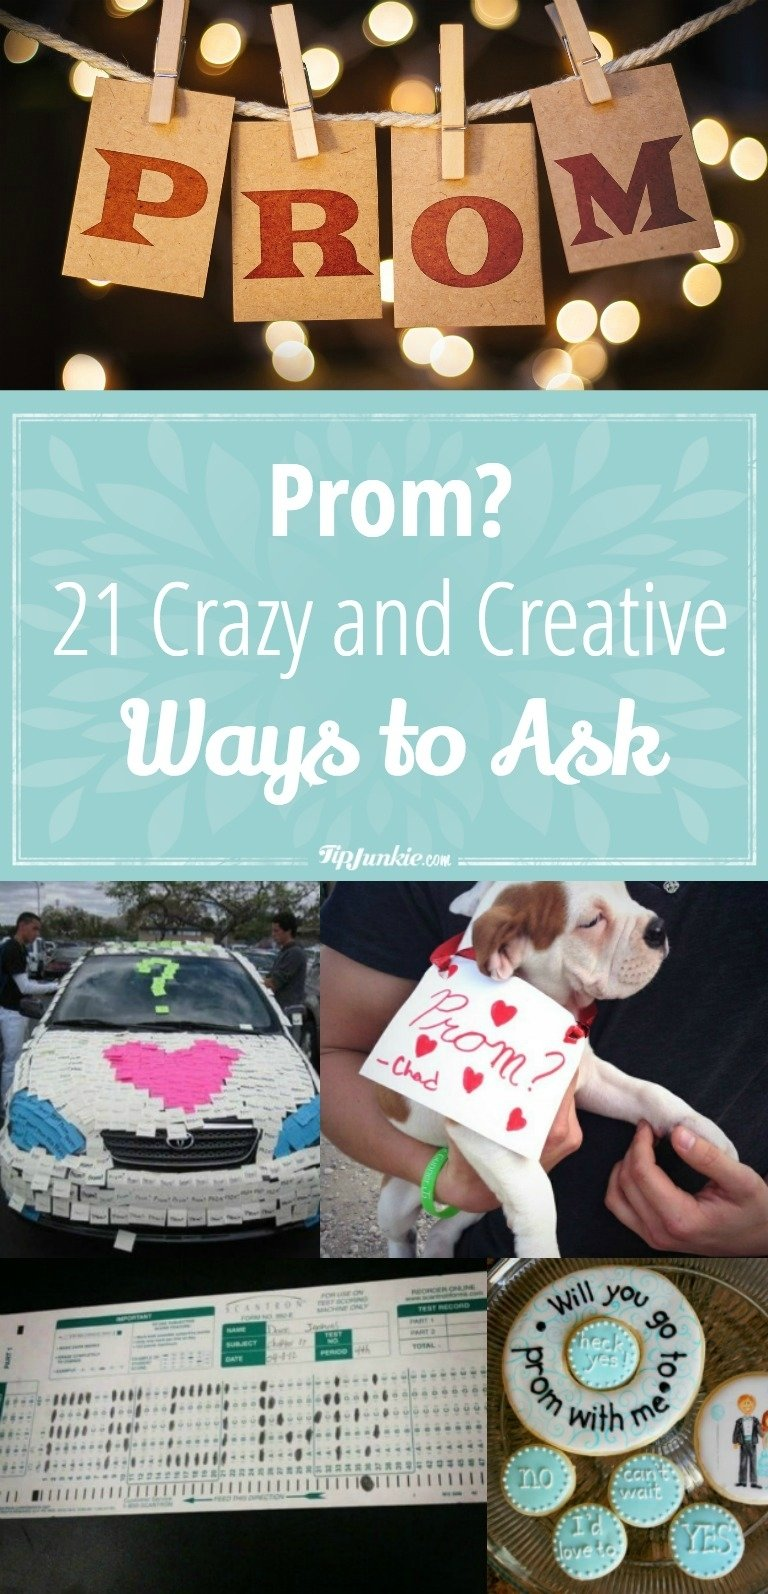 10 Nice Cute Ideas To Ask A Girl To Prom prom 21 crazy and creative ways to ask tip junkie 7 2020